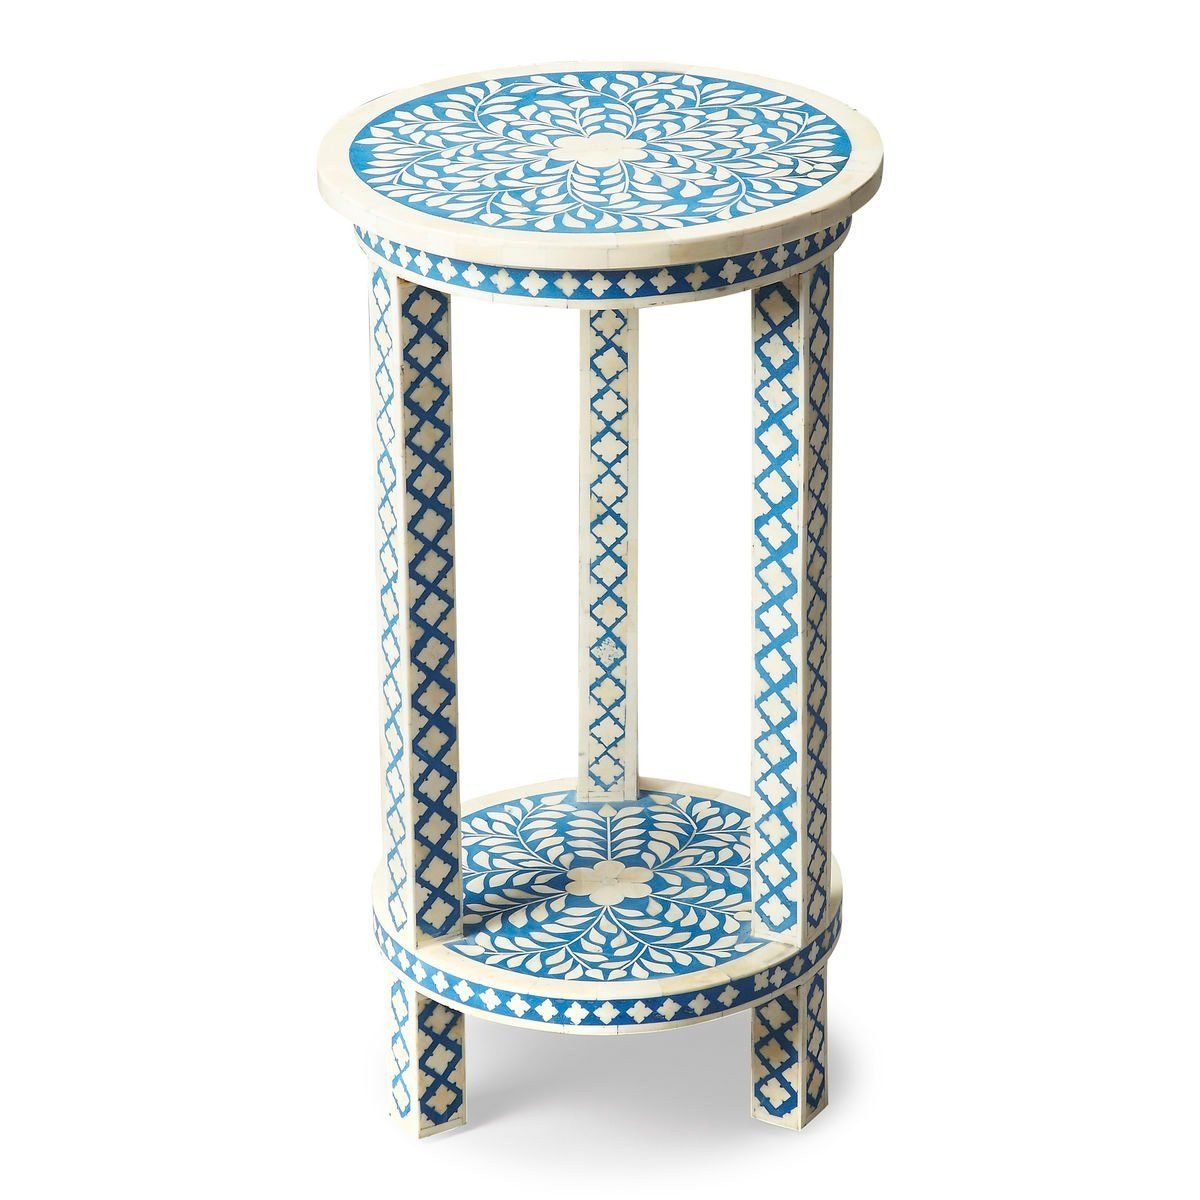 Exceptionnel Bone Inlay Furniture At Contemporary Furniture Warehouse | Accent Chairs,  Benches, Boxes, Chairside Chests, Chests, Coffee Tables, Console Tables,  Mirrors, ...